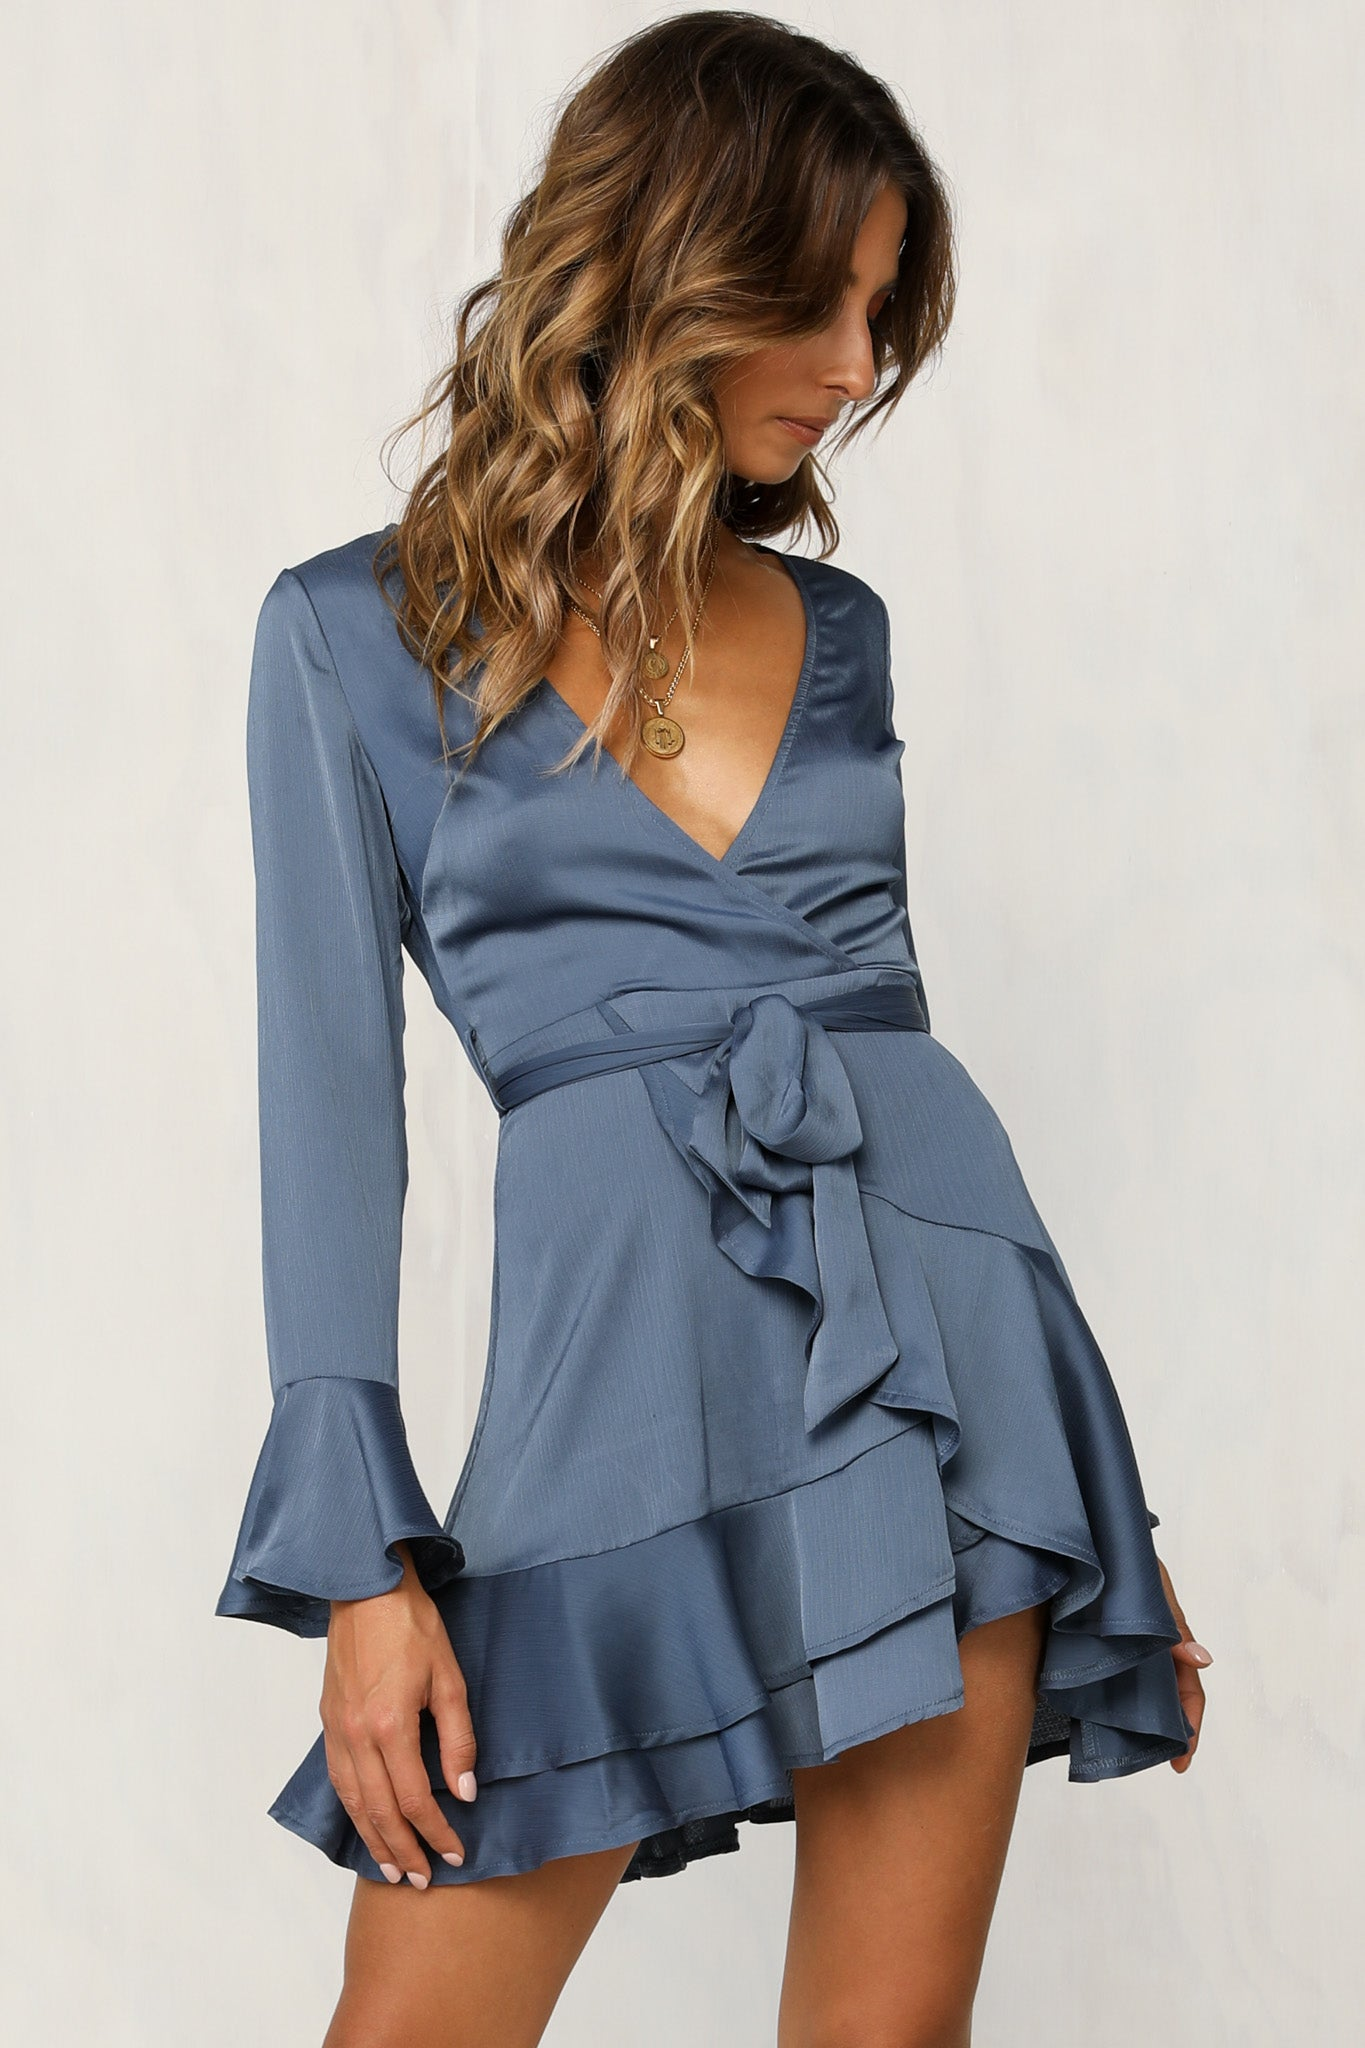 Wild Orchid Dress (Sky Blue)